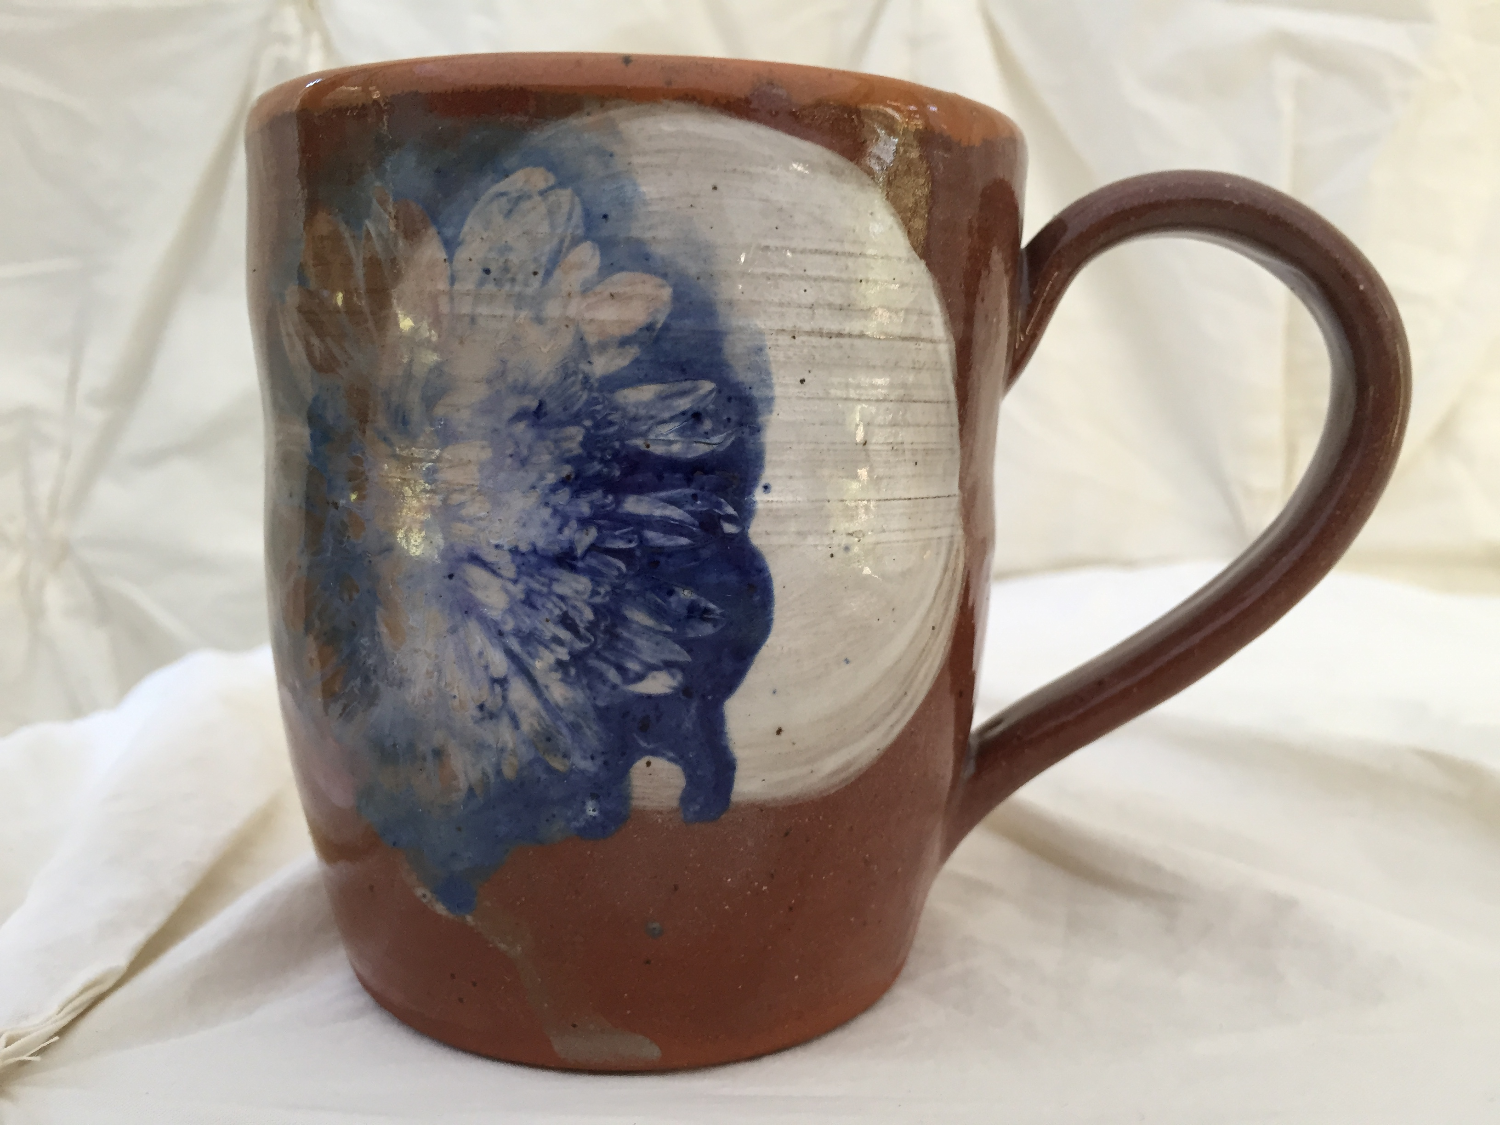 chrystanthemum on navajo clay mug